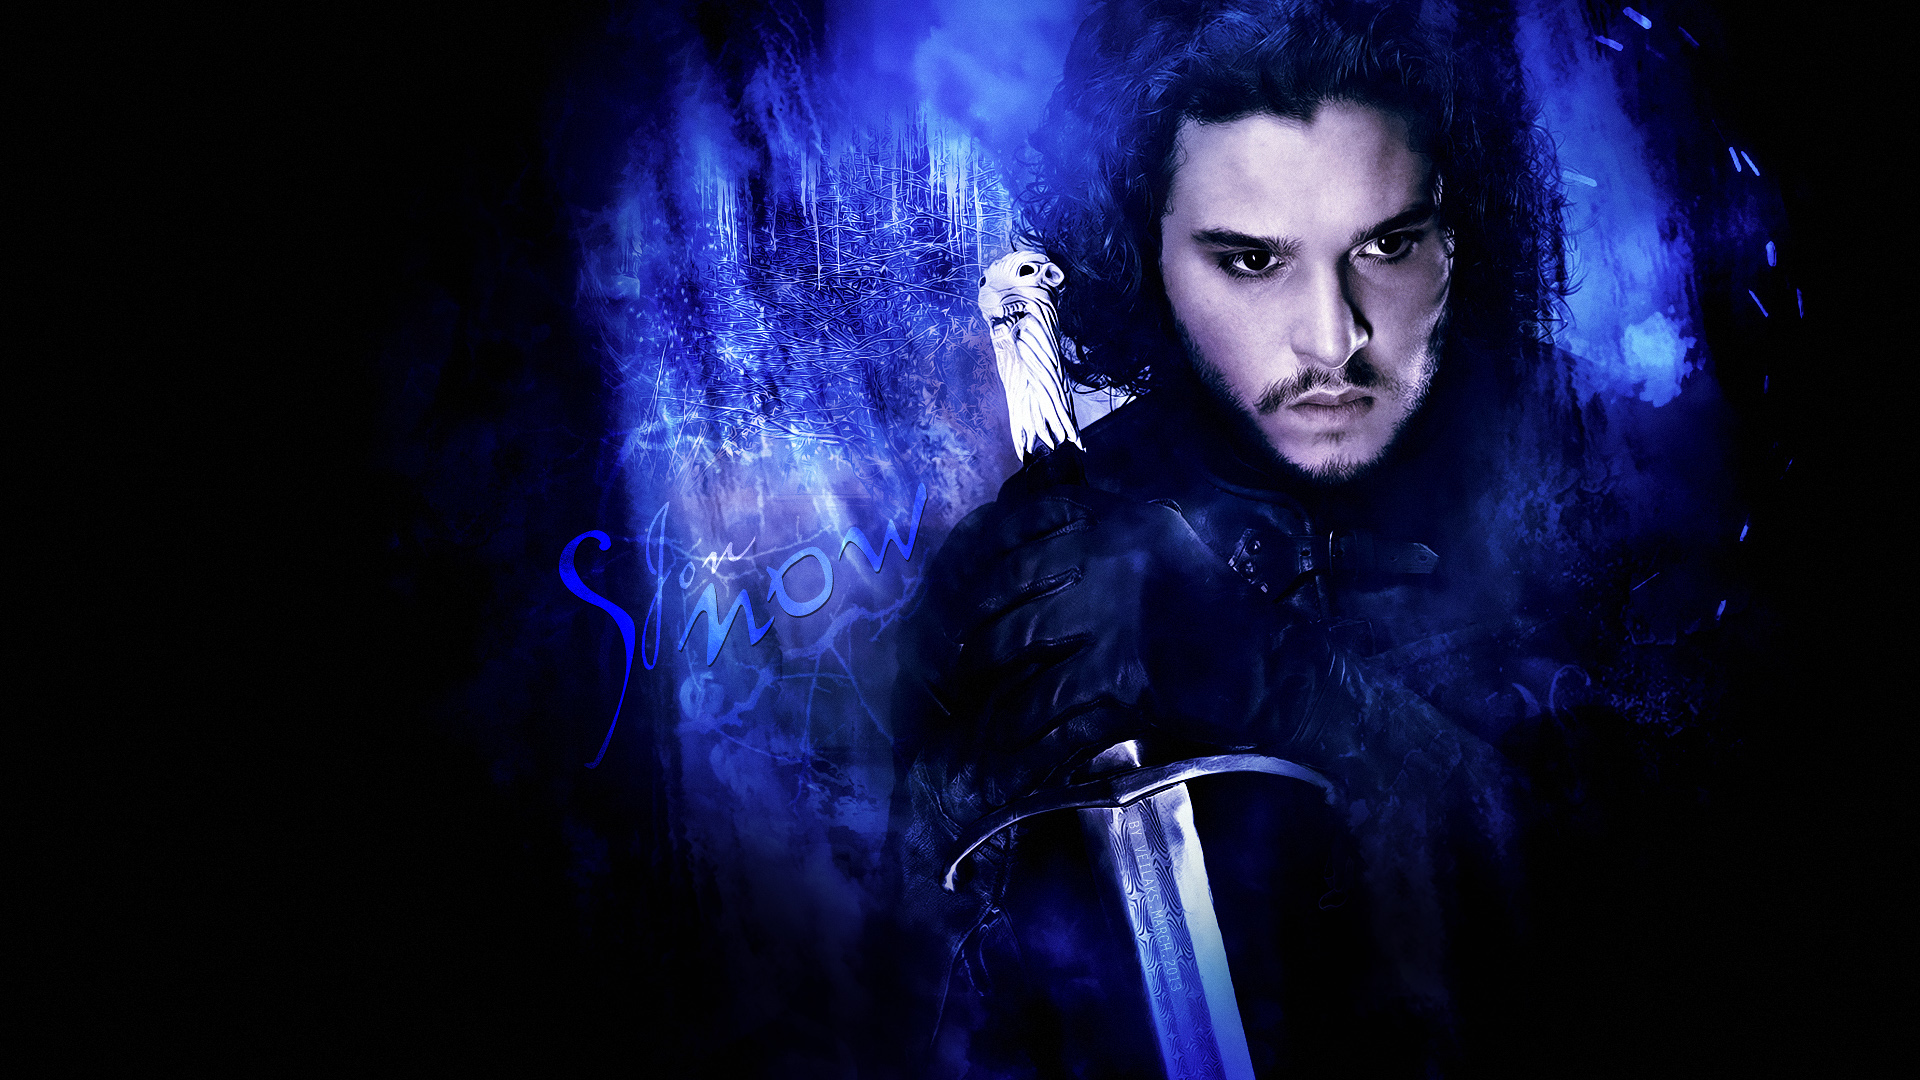 Free Download Game Of Thrones Images Jon Snow Wallpaper Photos 33951941 1920x1080 For Your Desktop Mobile Tablet Explore 48 John Snow Wallpaper Jon Snow Wallpaper Hd